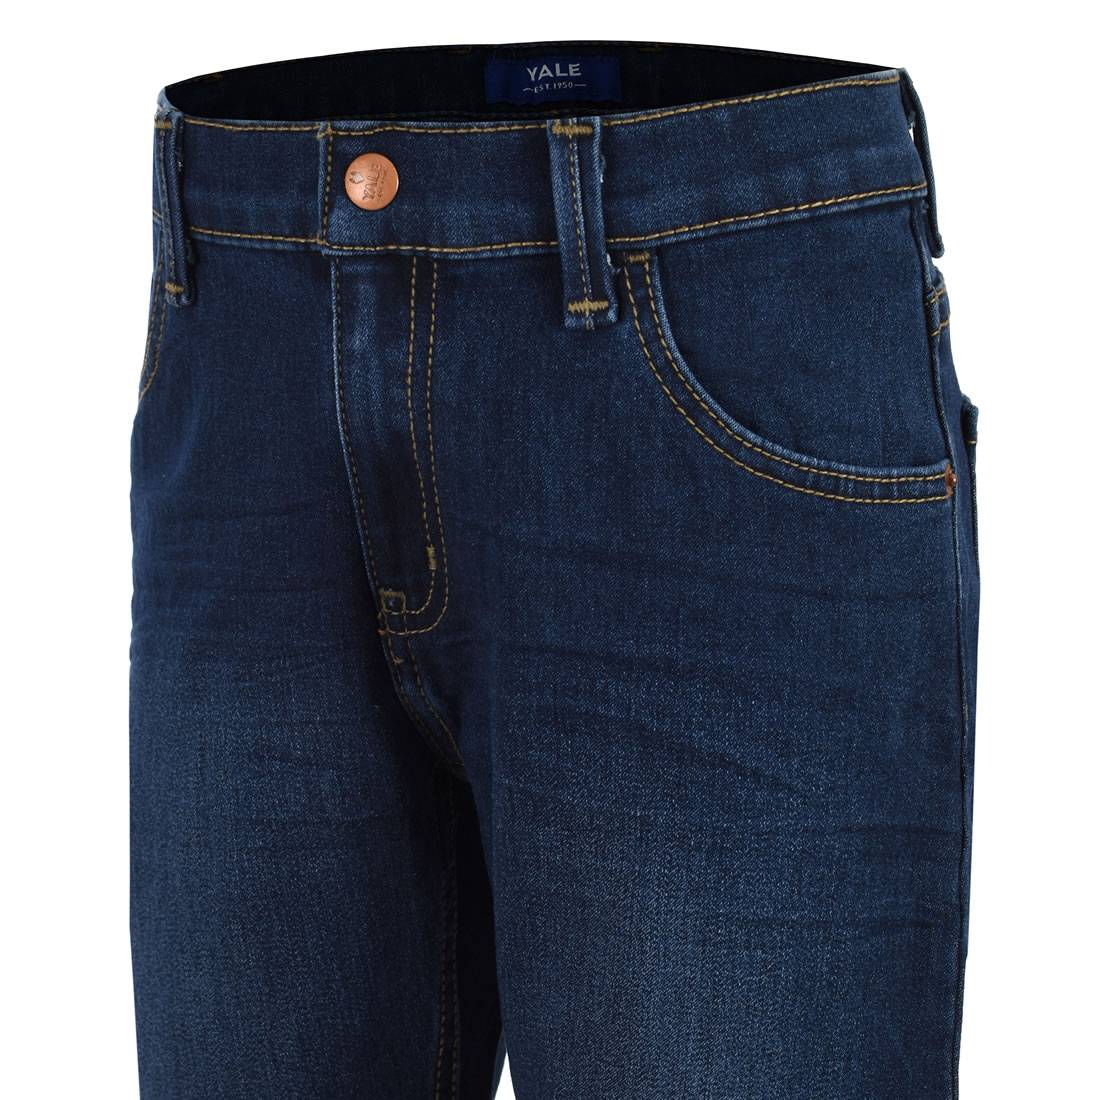 021403206918-03-Jeans-Boys-Boot-Cut-Hand-Sand-Whiskers-Con-Elastano-Cintura-Ajustable-Stone-Wash-yale